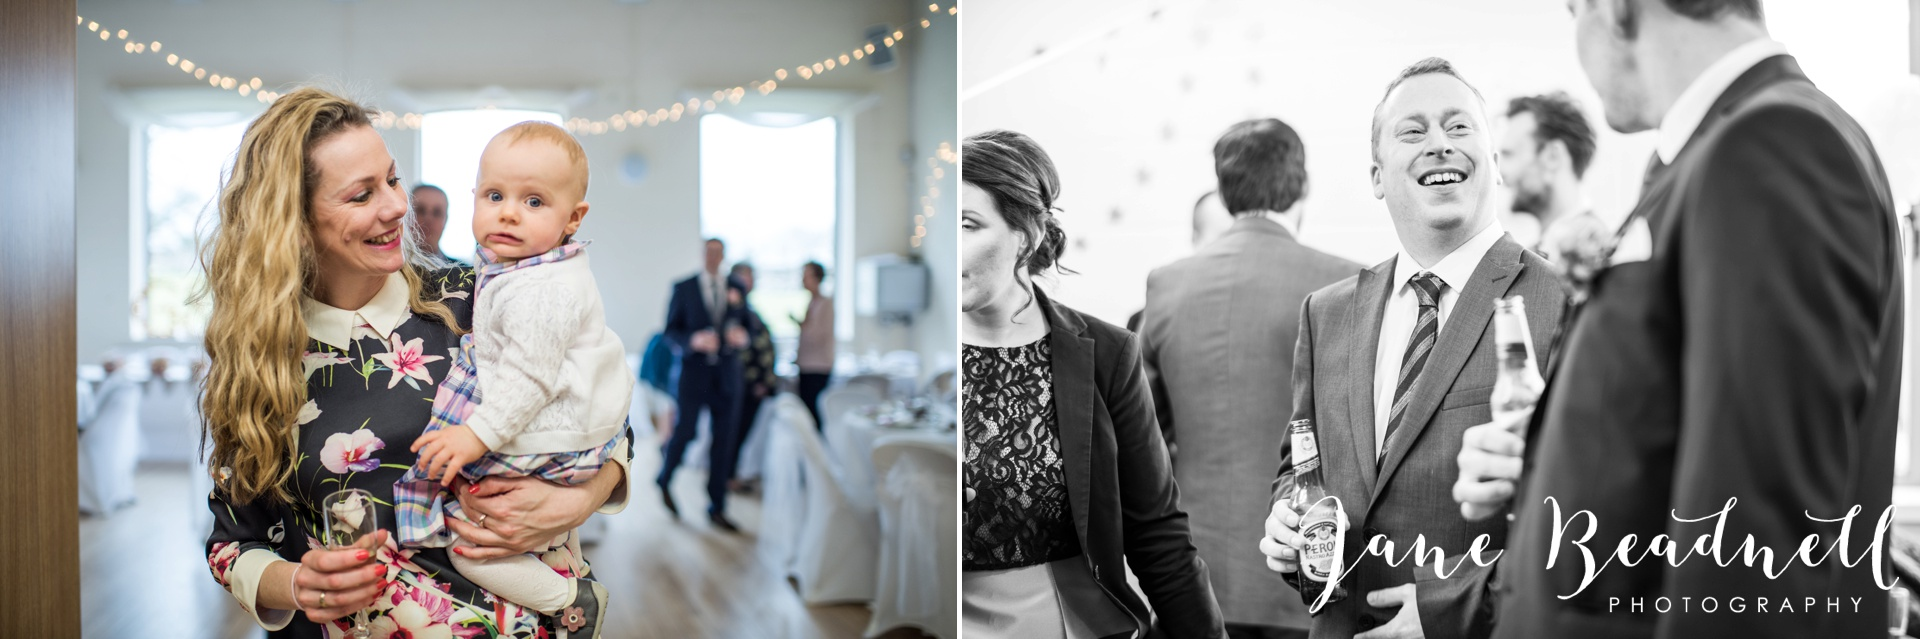 Cracoe Village Hall Wedding Photography by Jane Beadnell Photography fine art wedding photographer Yorkshire_0062